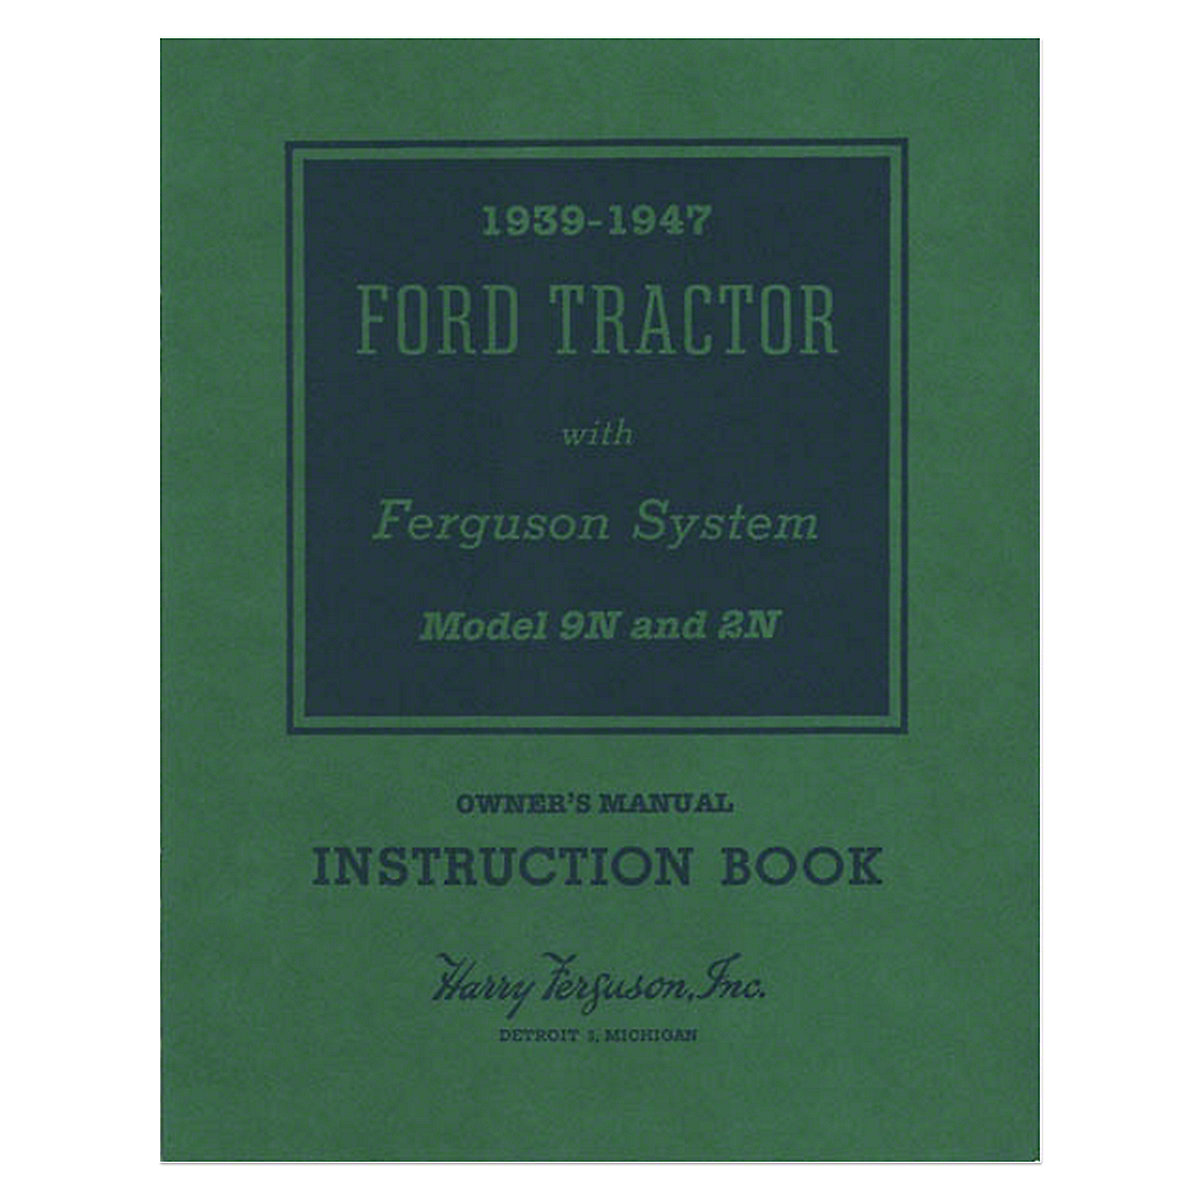 Bok061 Operator Manual Reprint 2n Ford Tractor Wiring Diagram 9n Owner